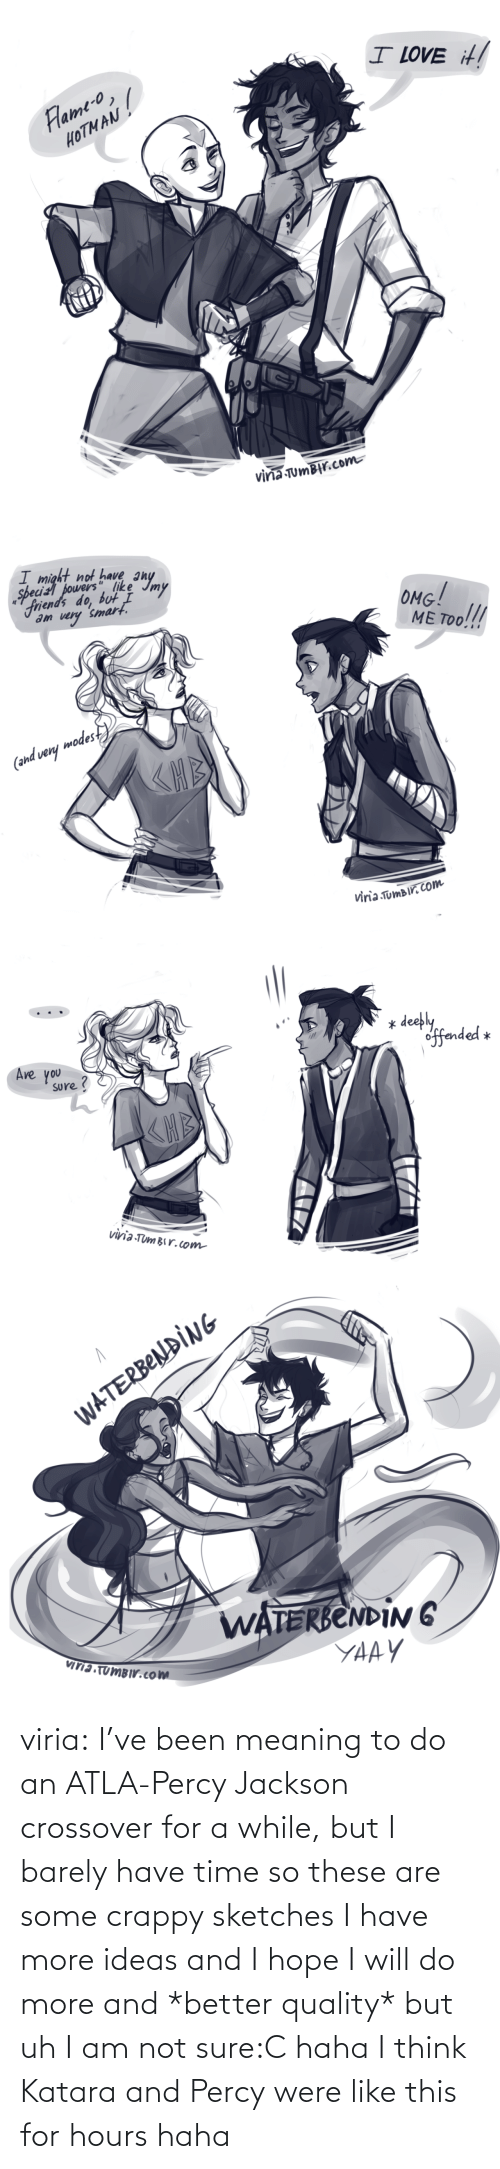 Are: viria:  I've been meaning to do an ATLA-Percy Jackson crossover for a while, but I barely have time so these are some crappy sketches I have more ideas and I hope I will do more and *better quality* but uh I am not sure:C haha I think Katara and Percy were like this for hours haha